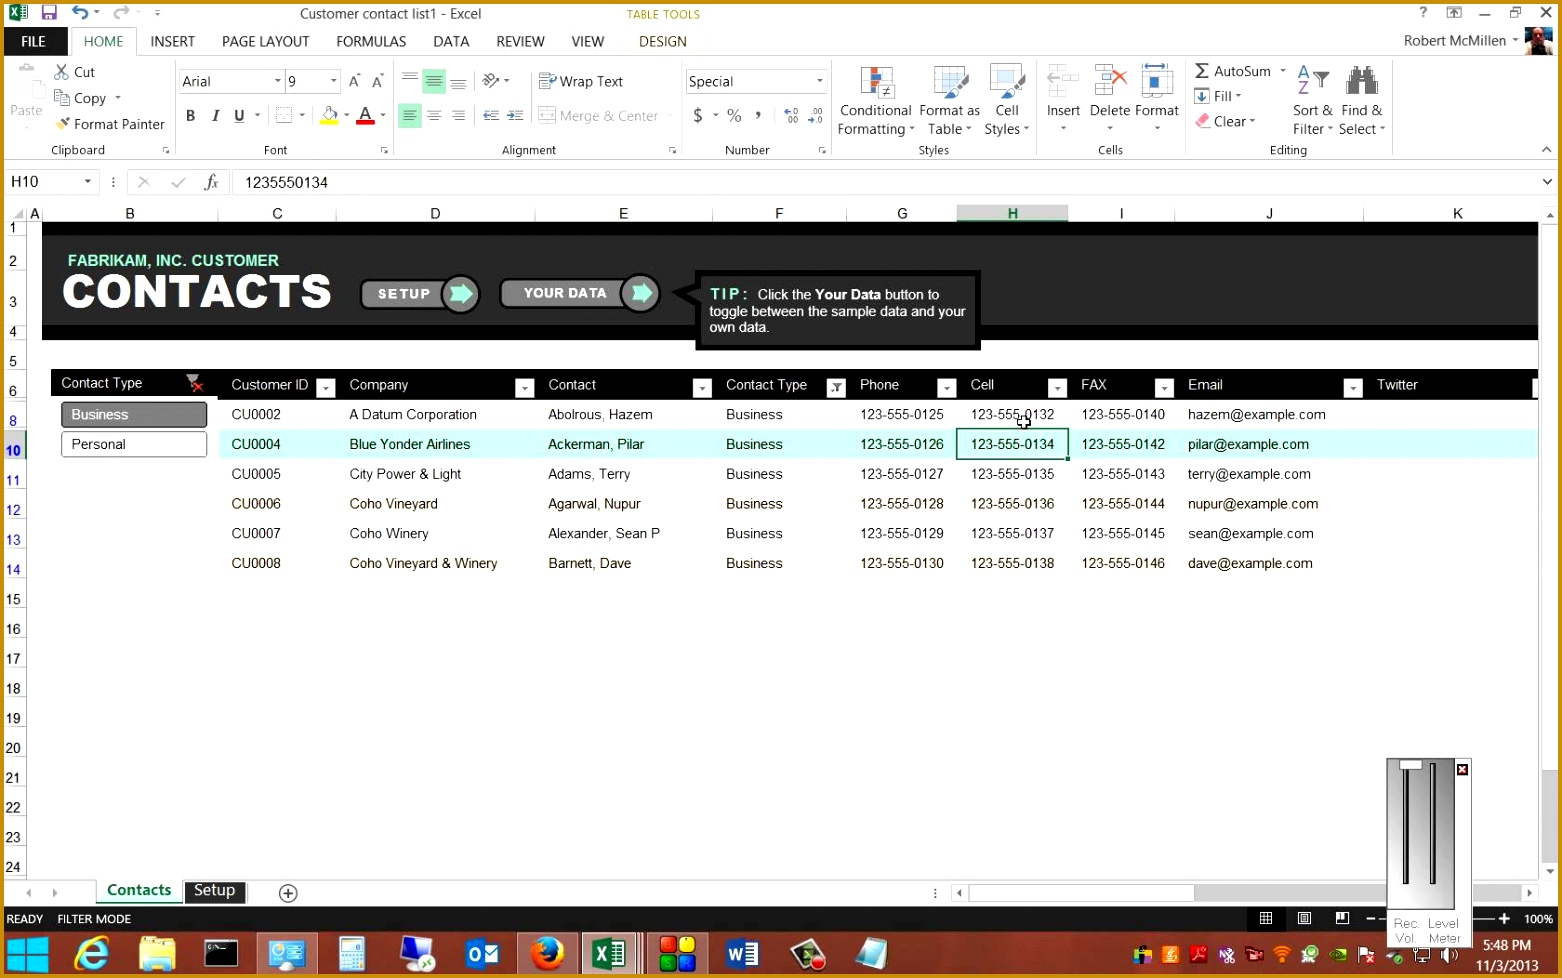 Review of the free Customer Contact Template in Microsoft Excel 2013 9781562